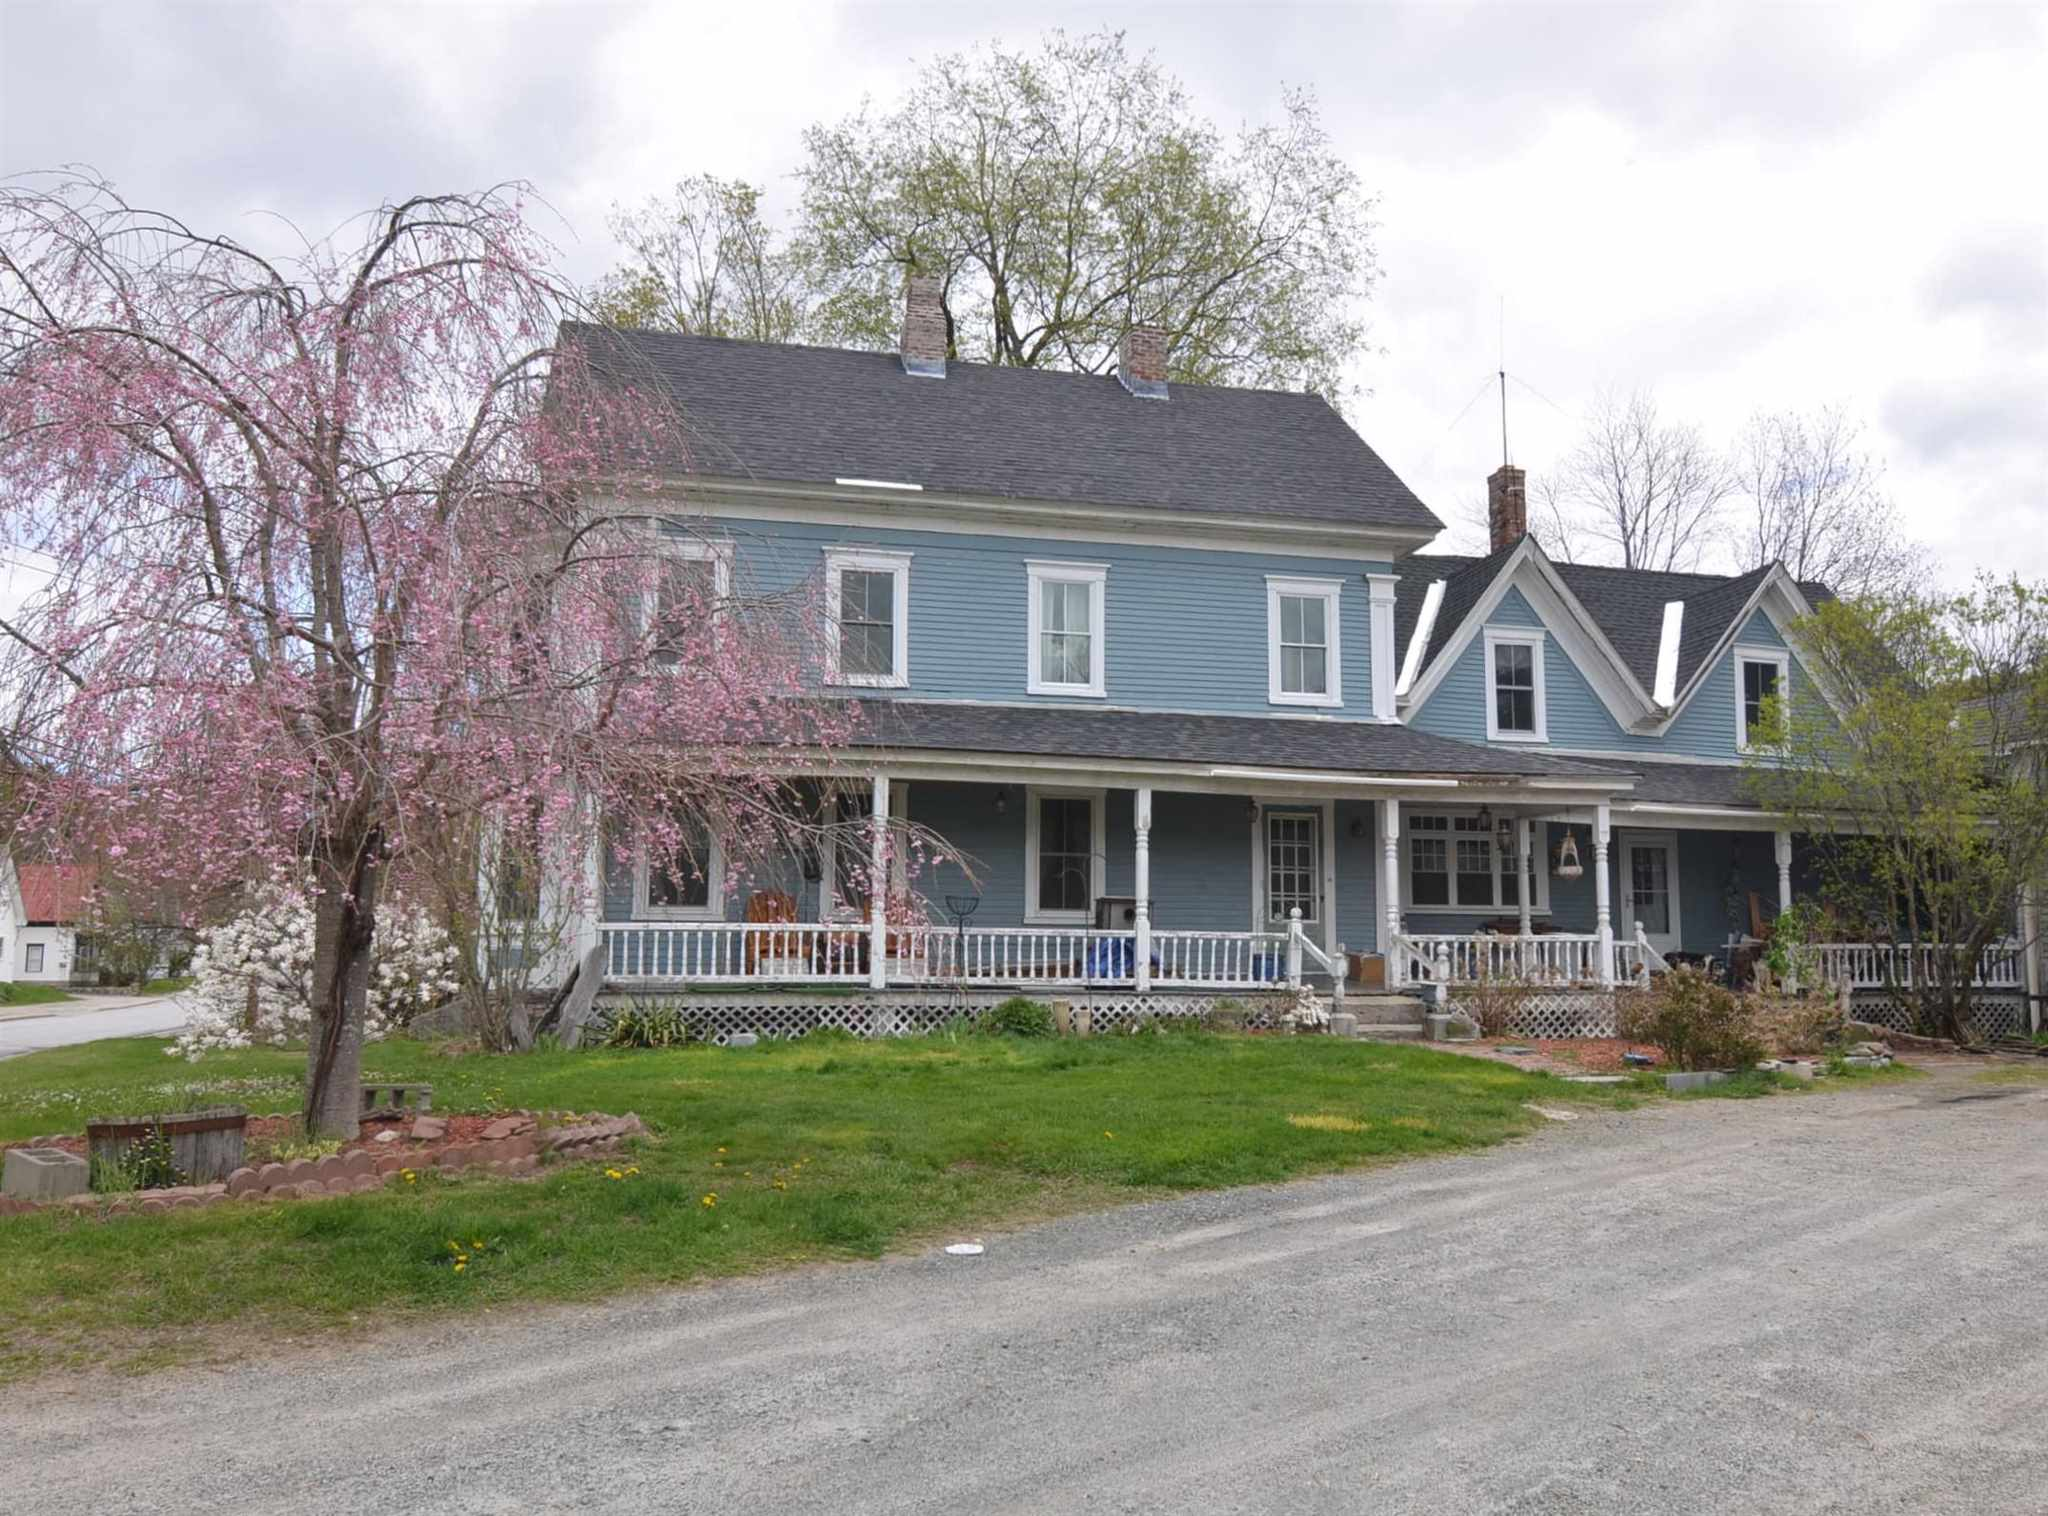 image of Sunapee NH Home | sq.ft. 5944